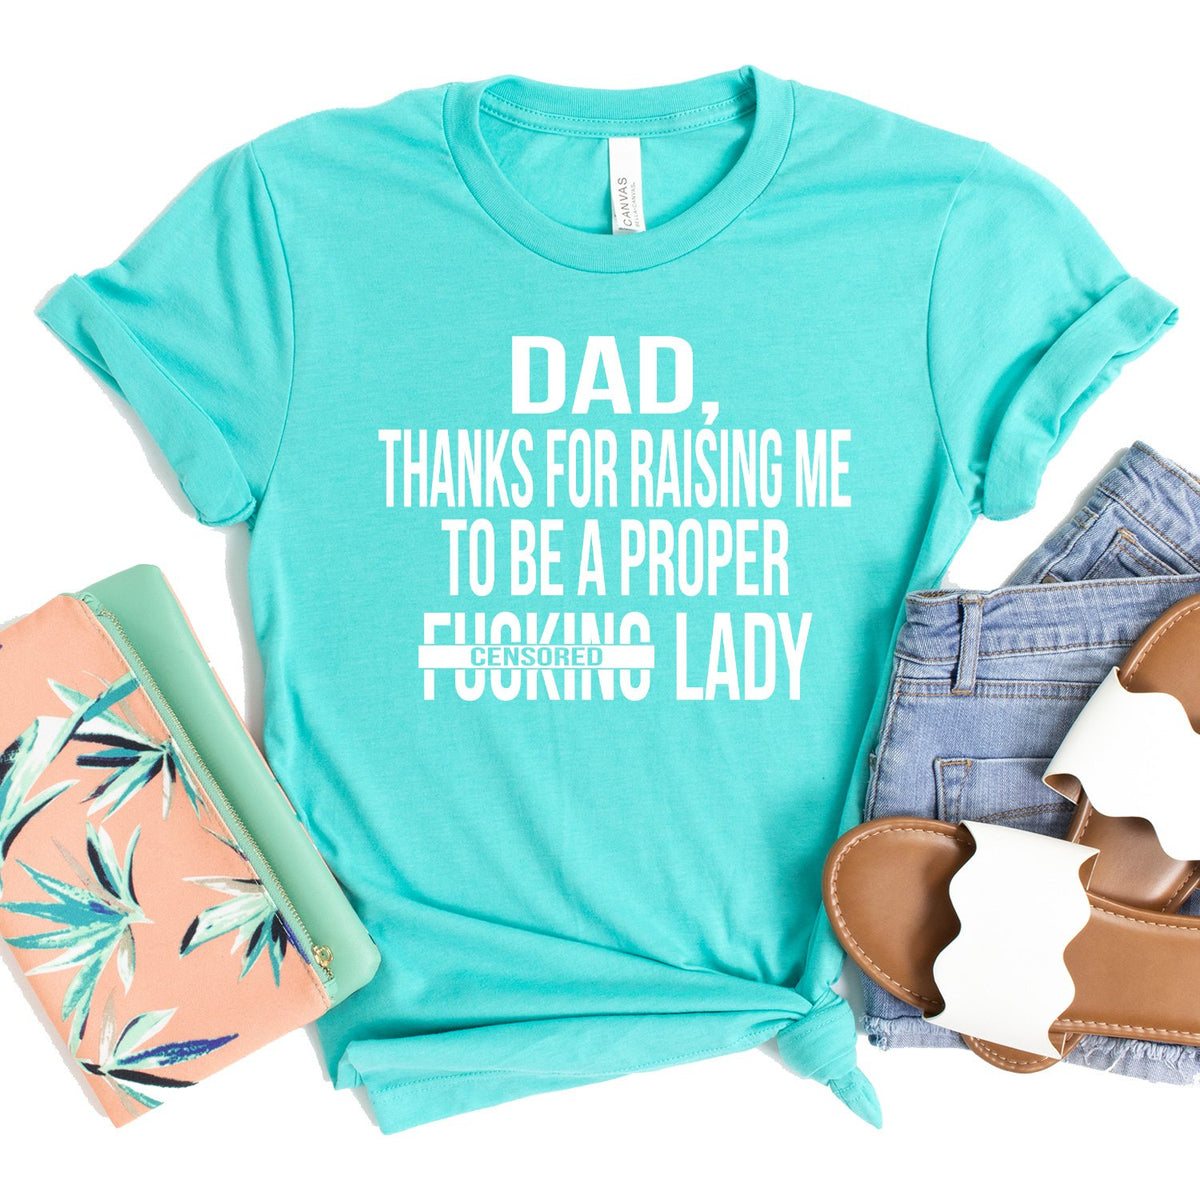 DAD Thanks For Raising Me To Be A Proper Fucking Lady - Short Sleeve Tee Shirt